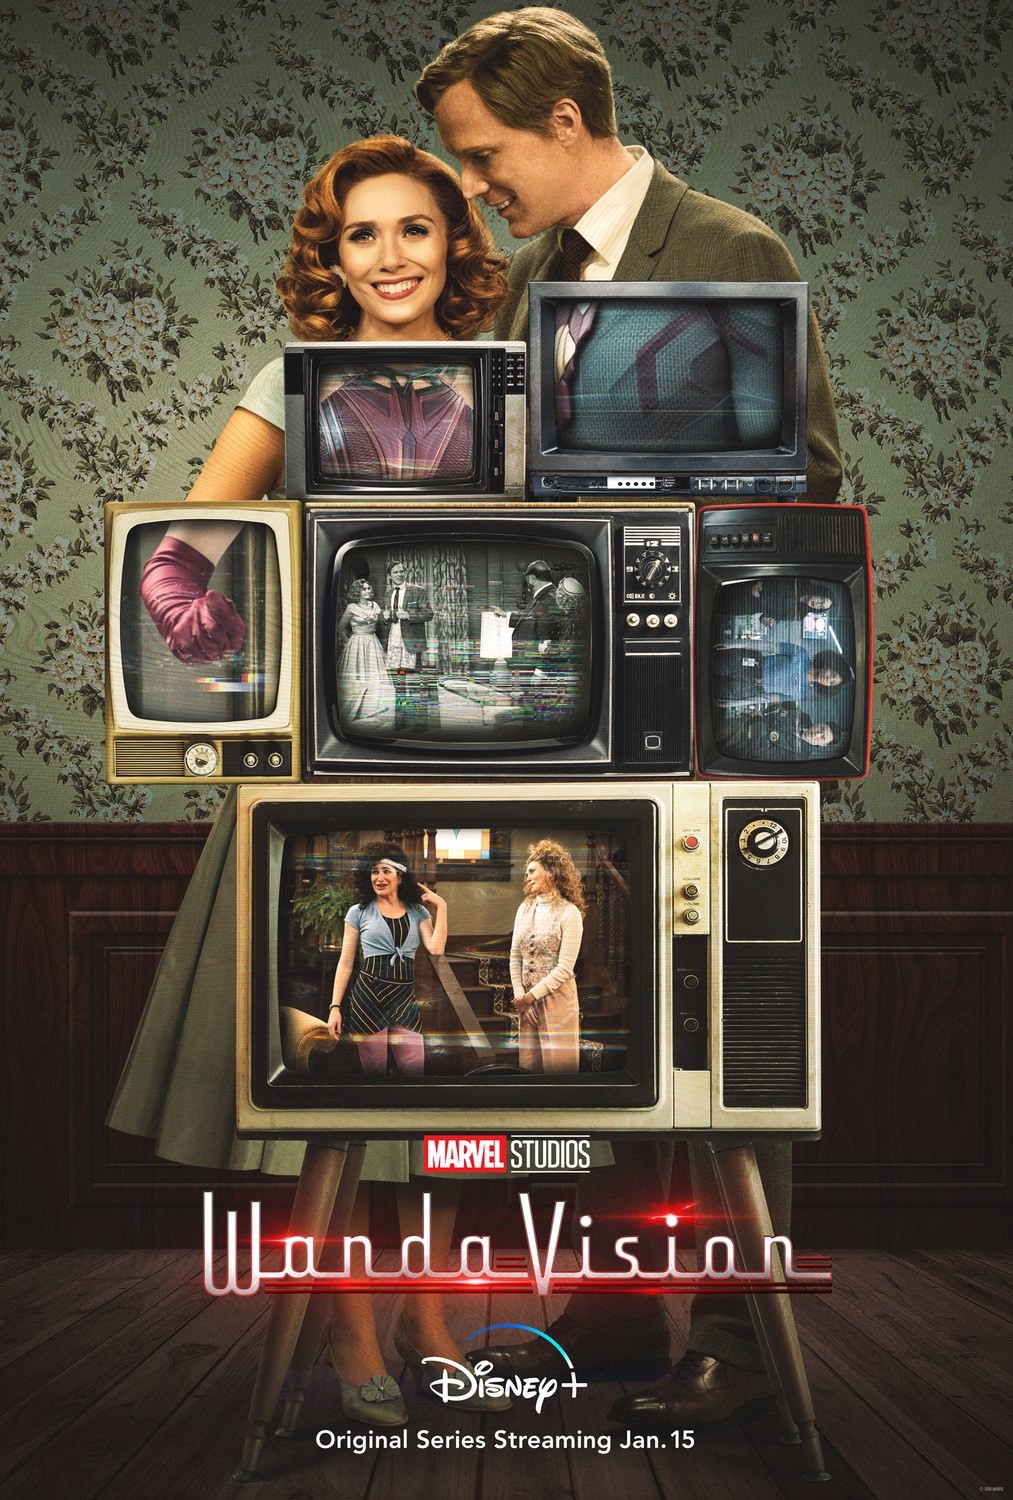 WandaVision Poster featuring Olsen and Bettany